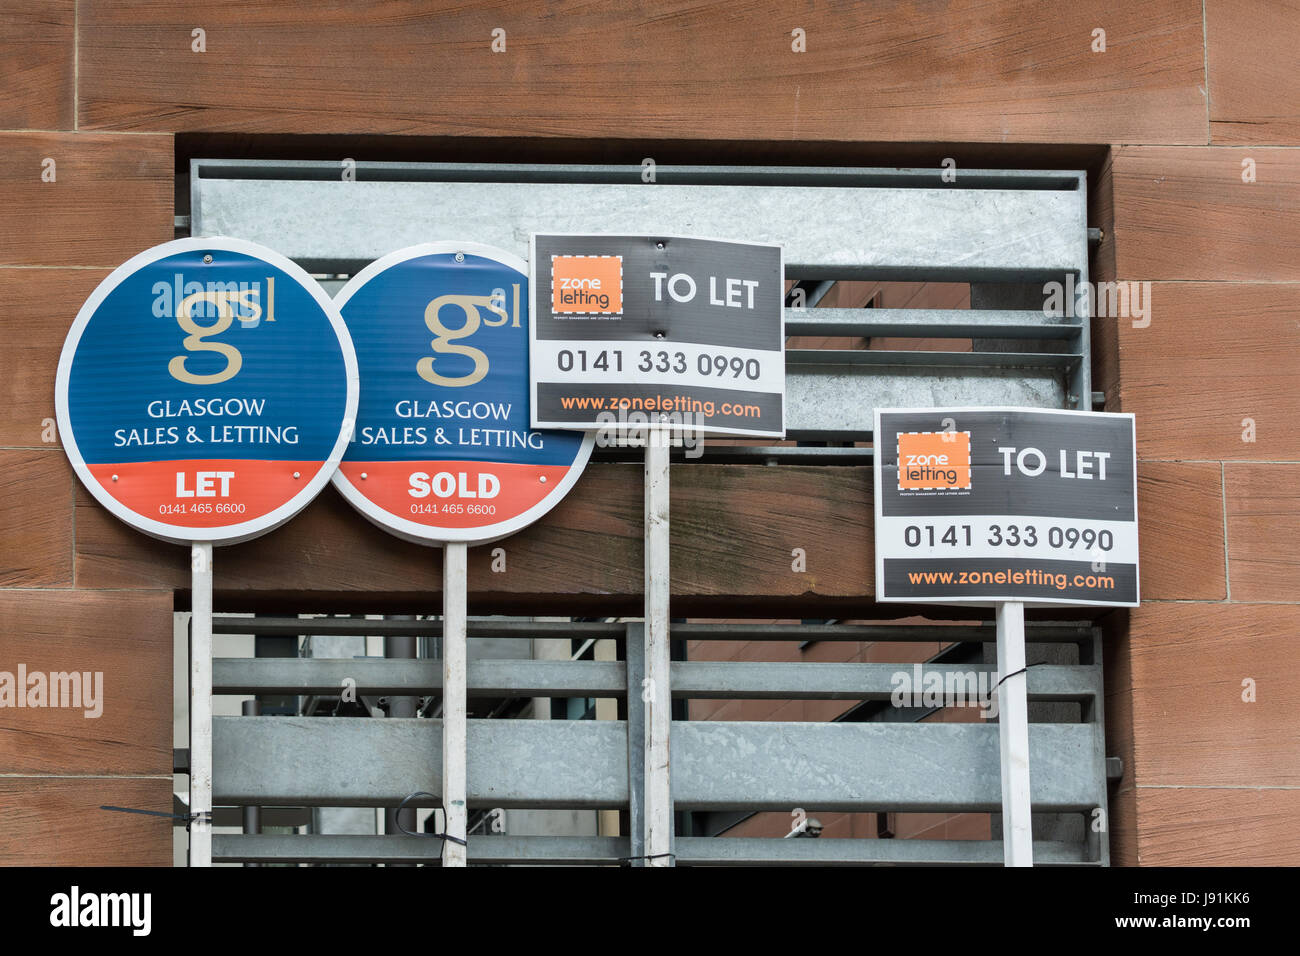 To let and for sale signs in Glasgow city centre, Scotland - Stock Image